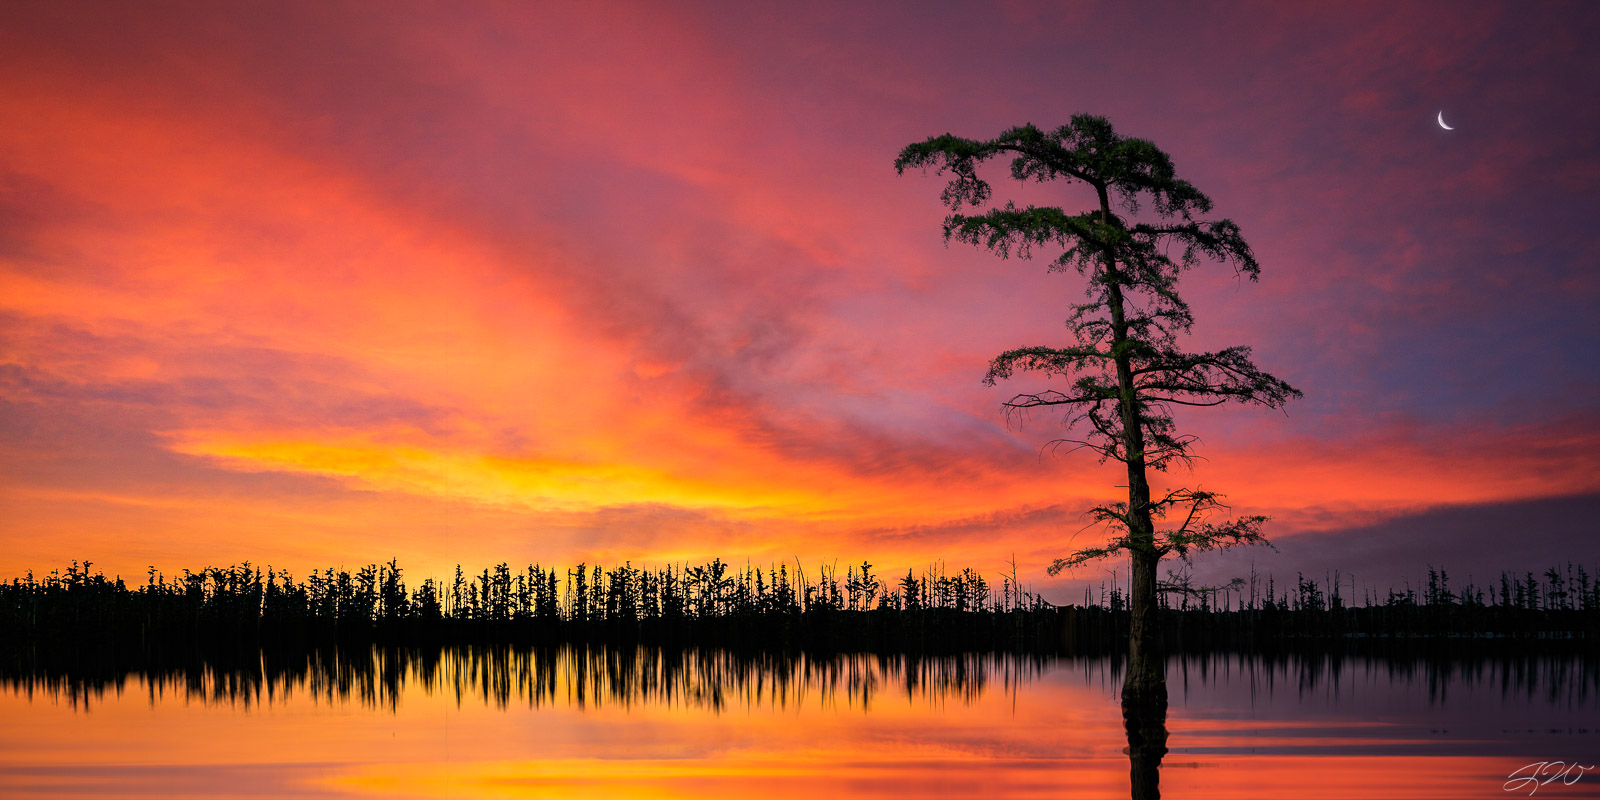 Clouds, Lake, Landscape, Moon, Reflection, Sunset, bald cypress, vibrant, panorama, photo